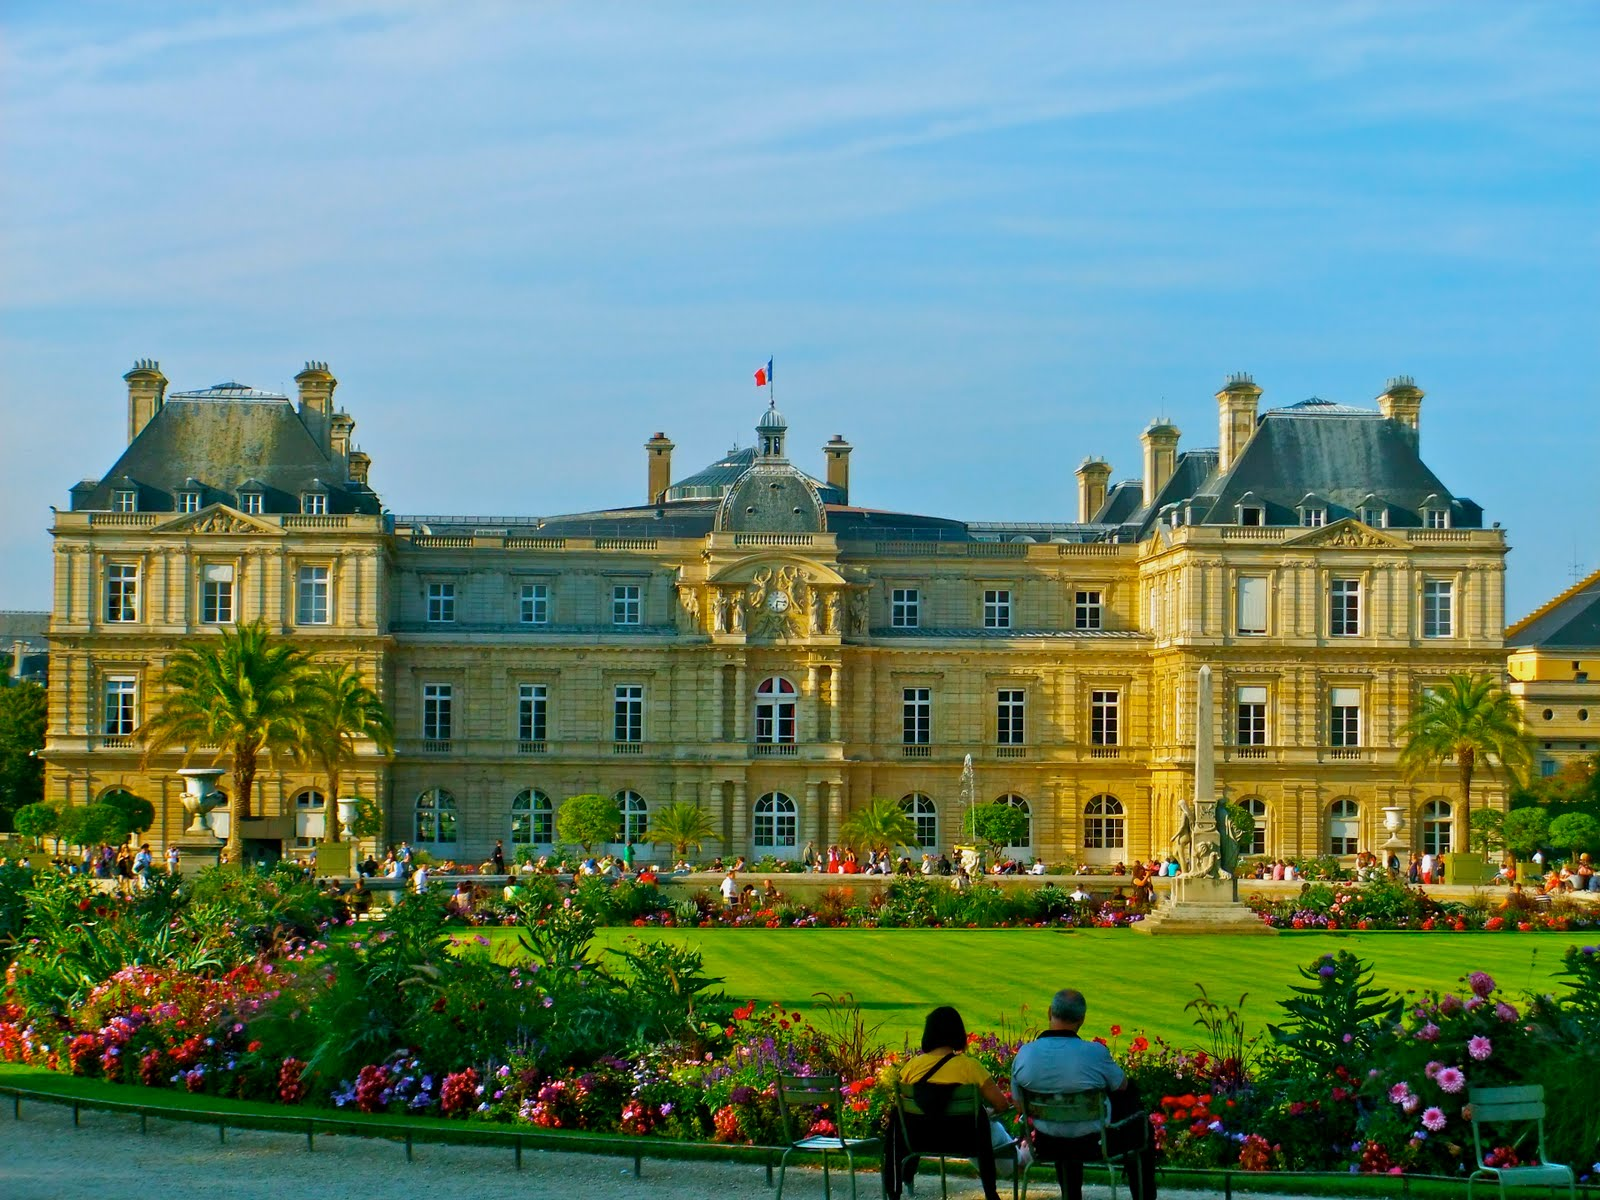 jardin du luxembourg historical facts and pictures the history hub. Black Bedroom Furniture Sets. Home Design Ideas